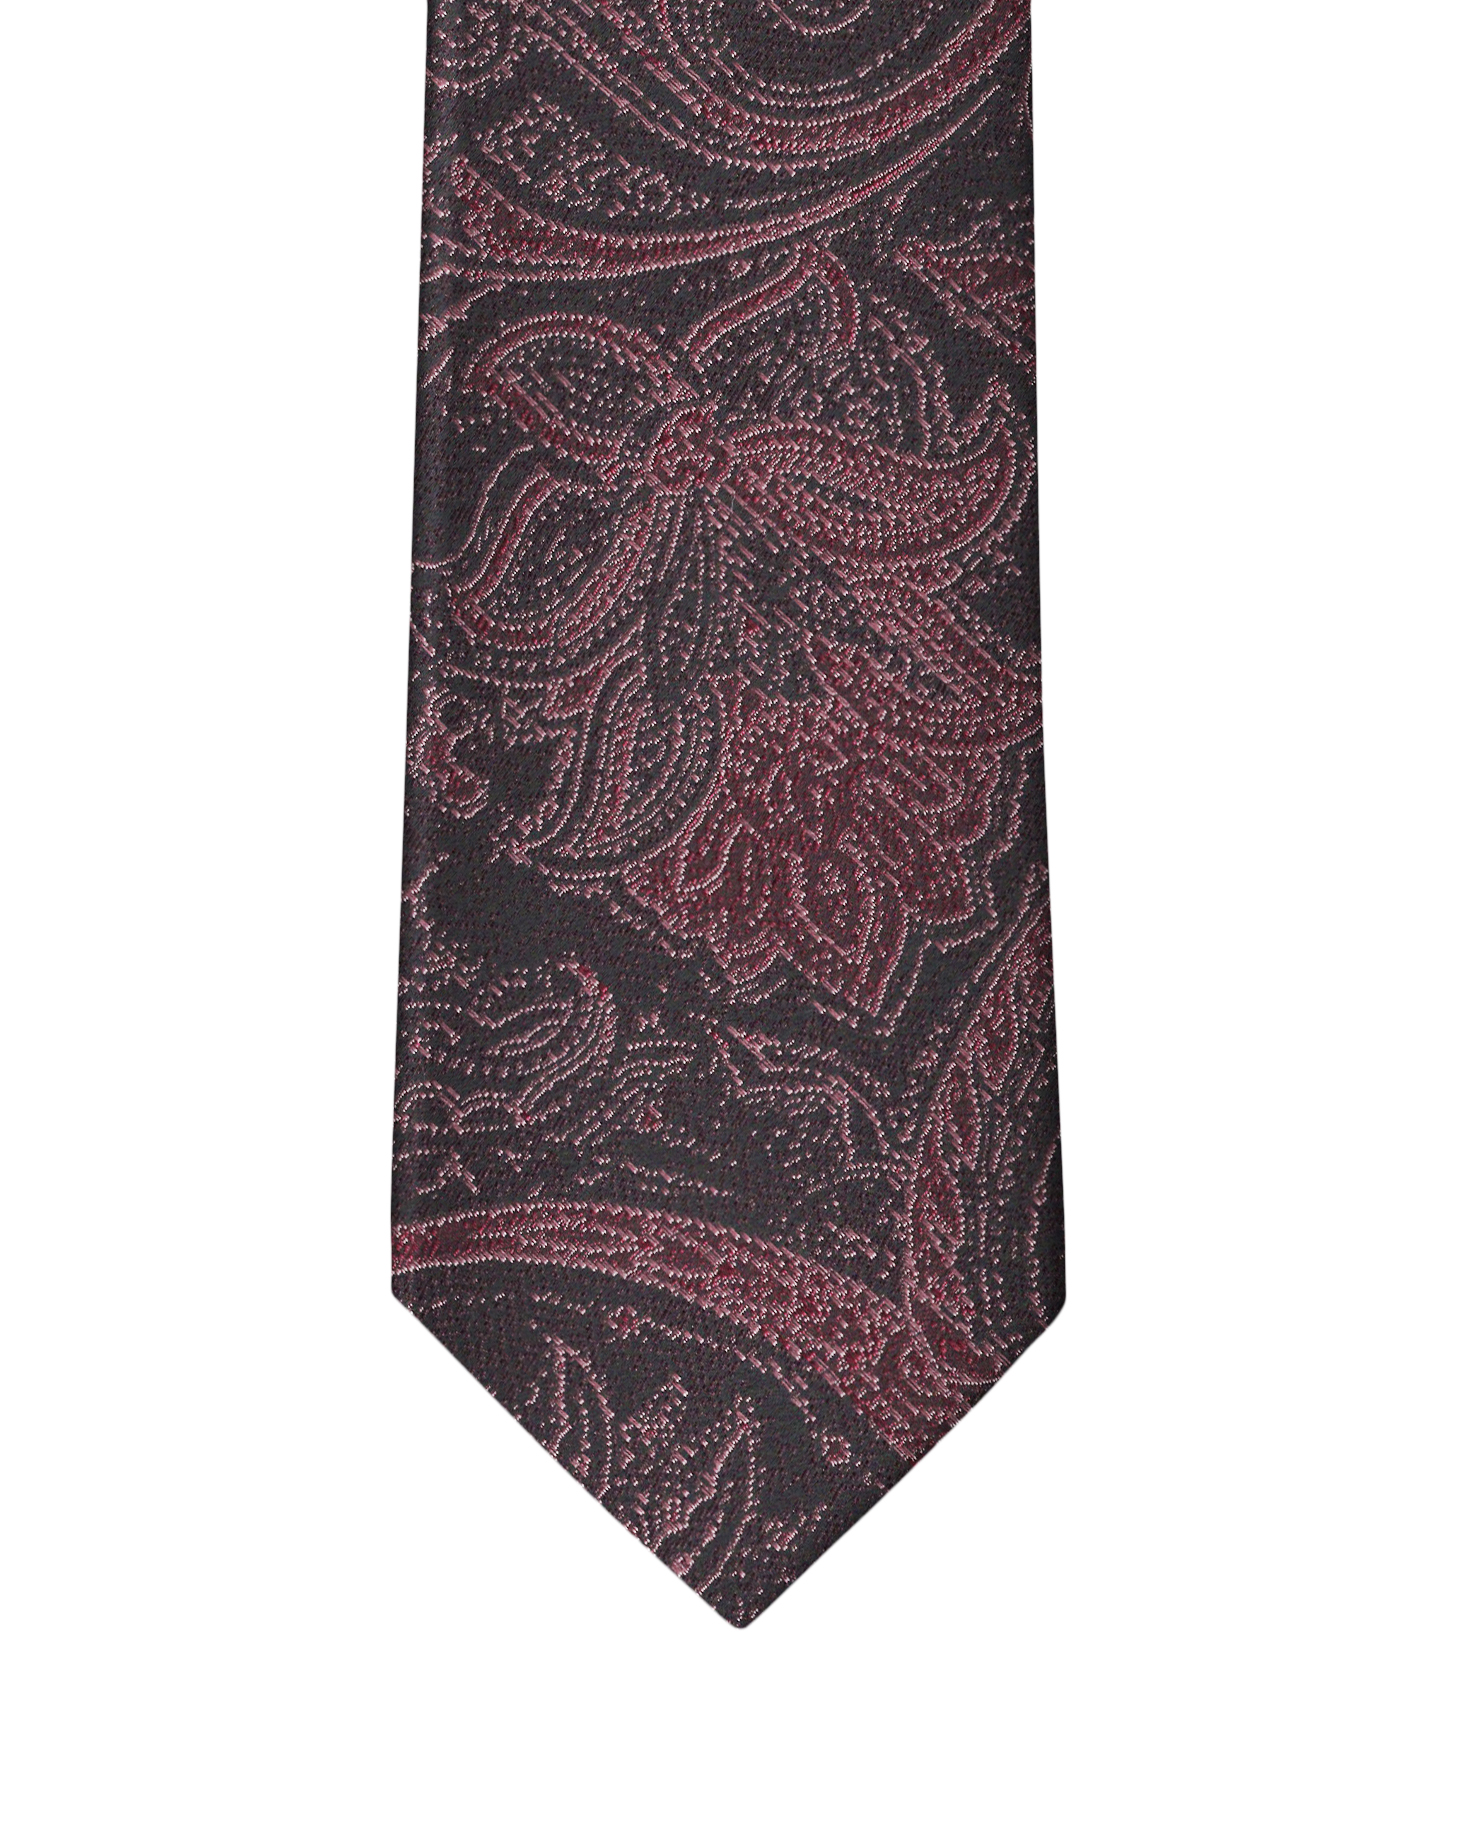 Burgundy & Red Persian Paisley Necktie